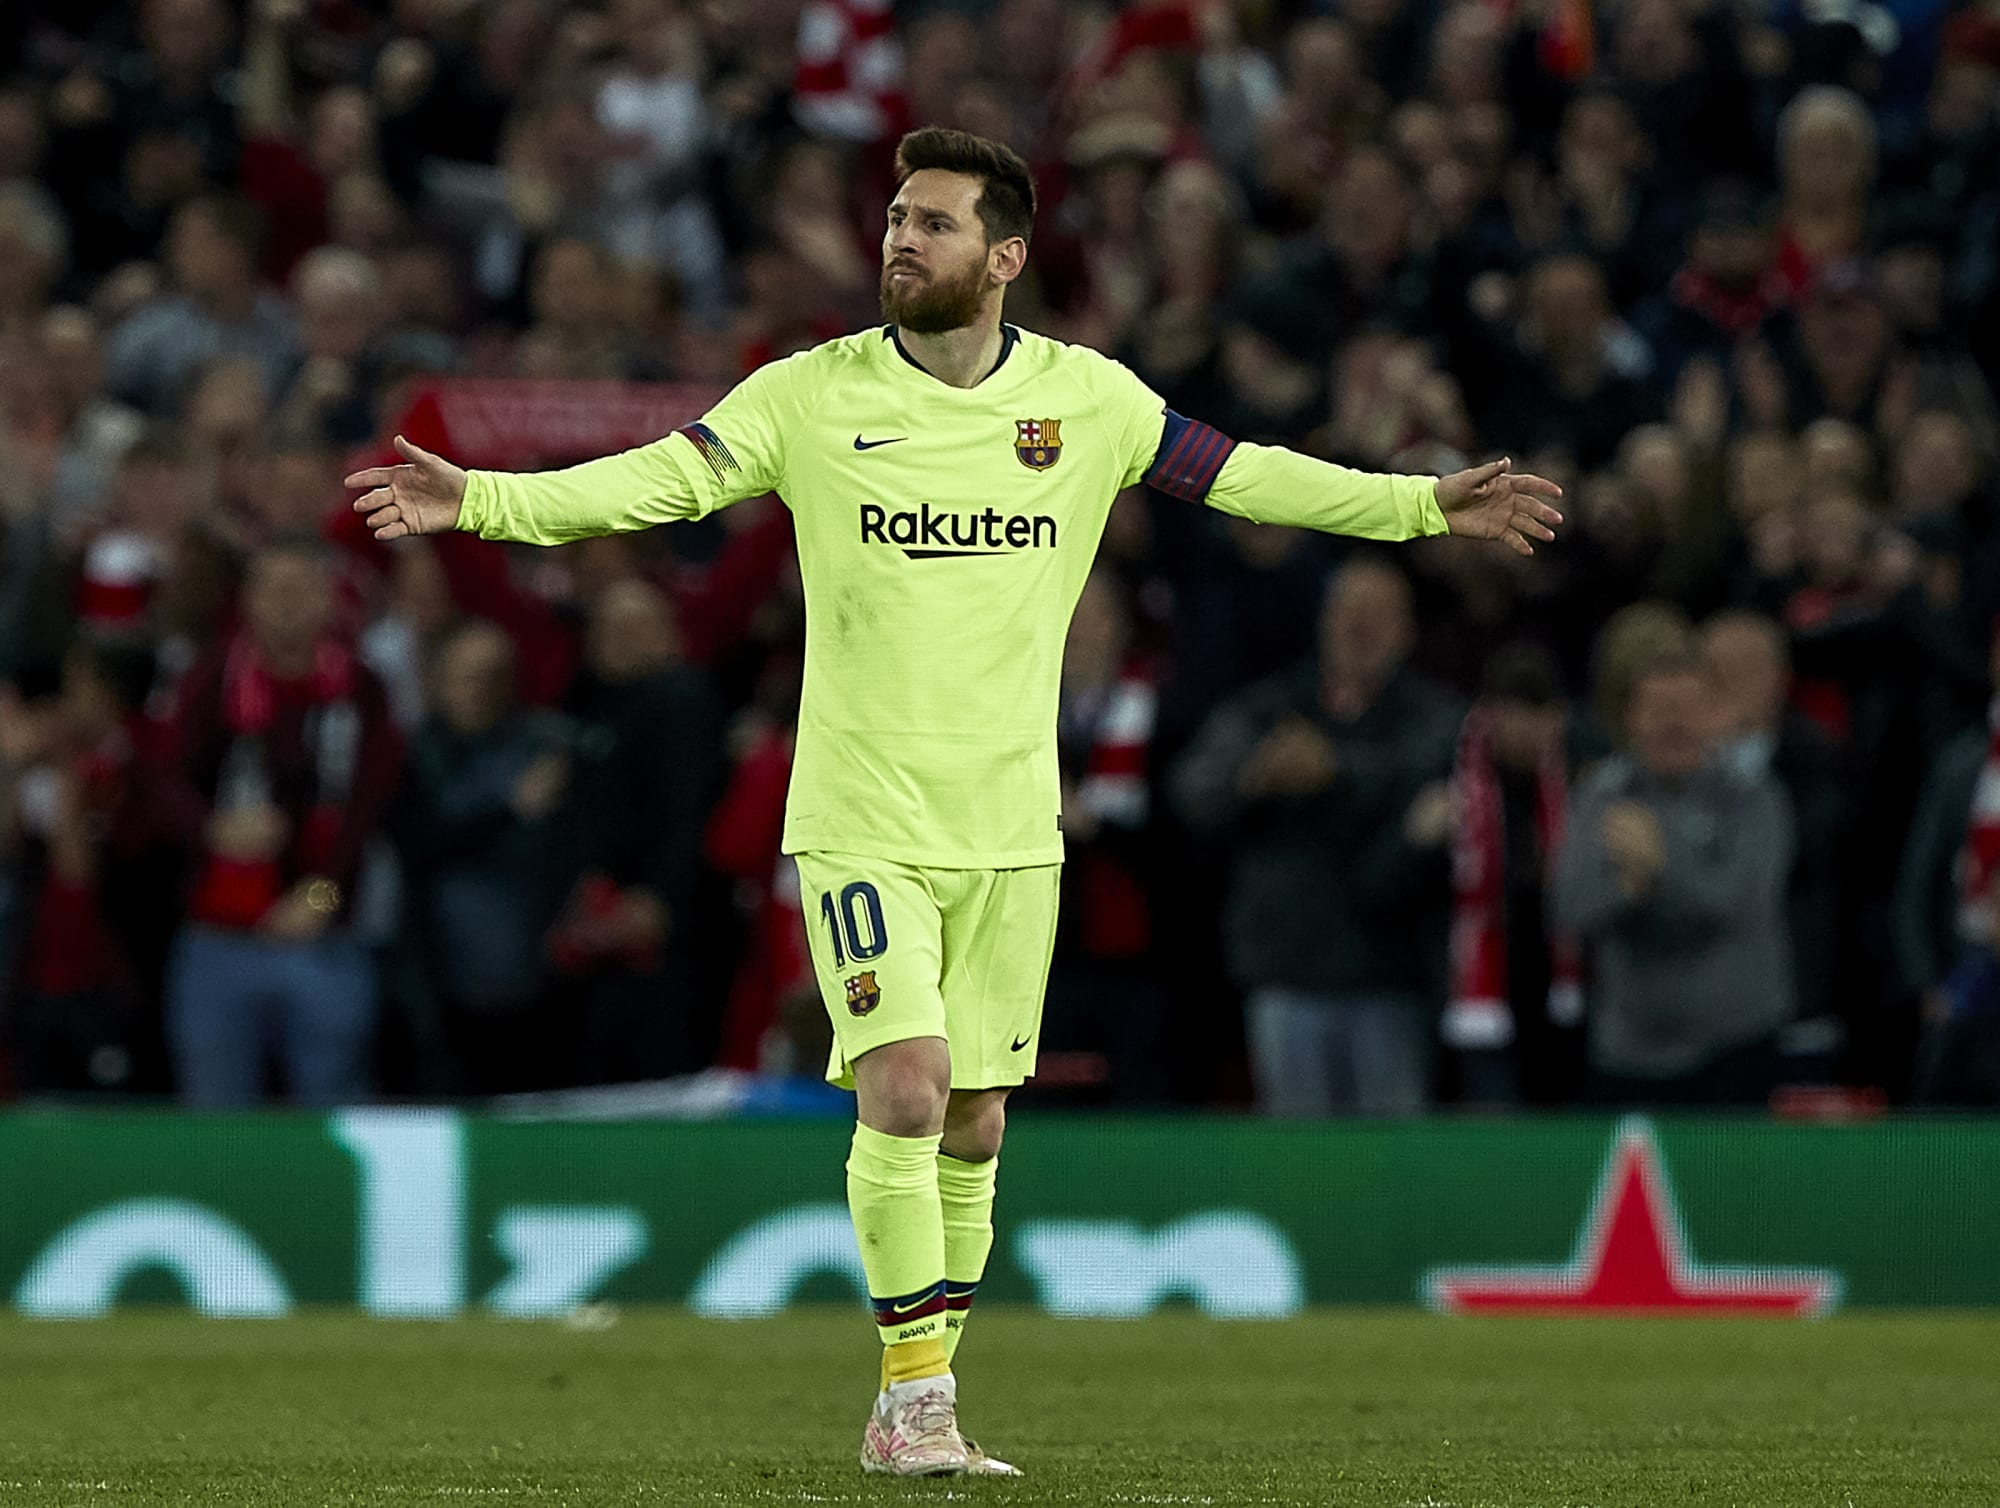 Trent Alexander-Arnold calls Lionel Messi an unstoppable genius